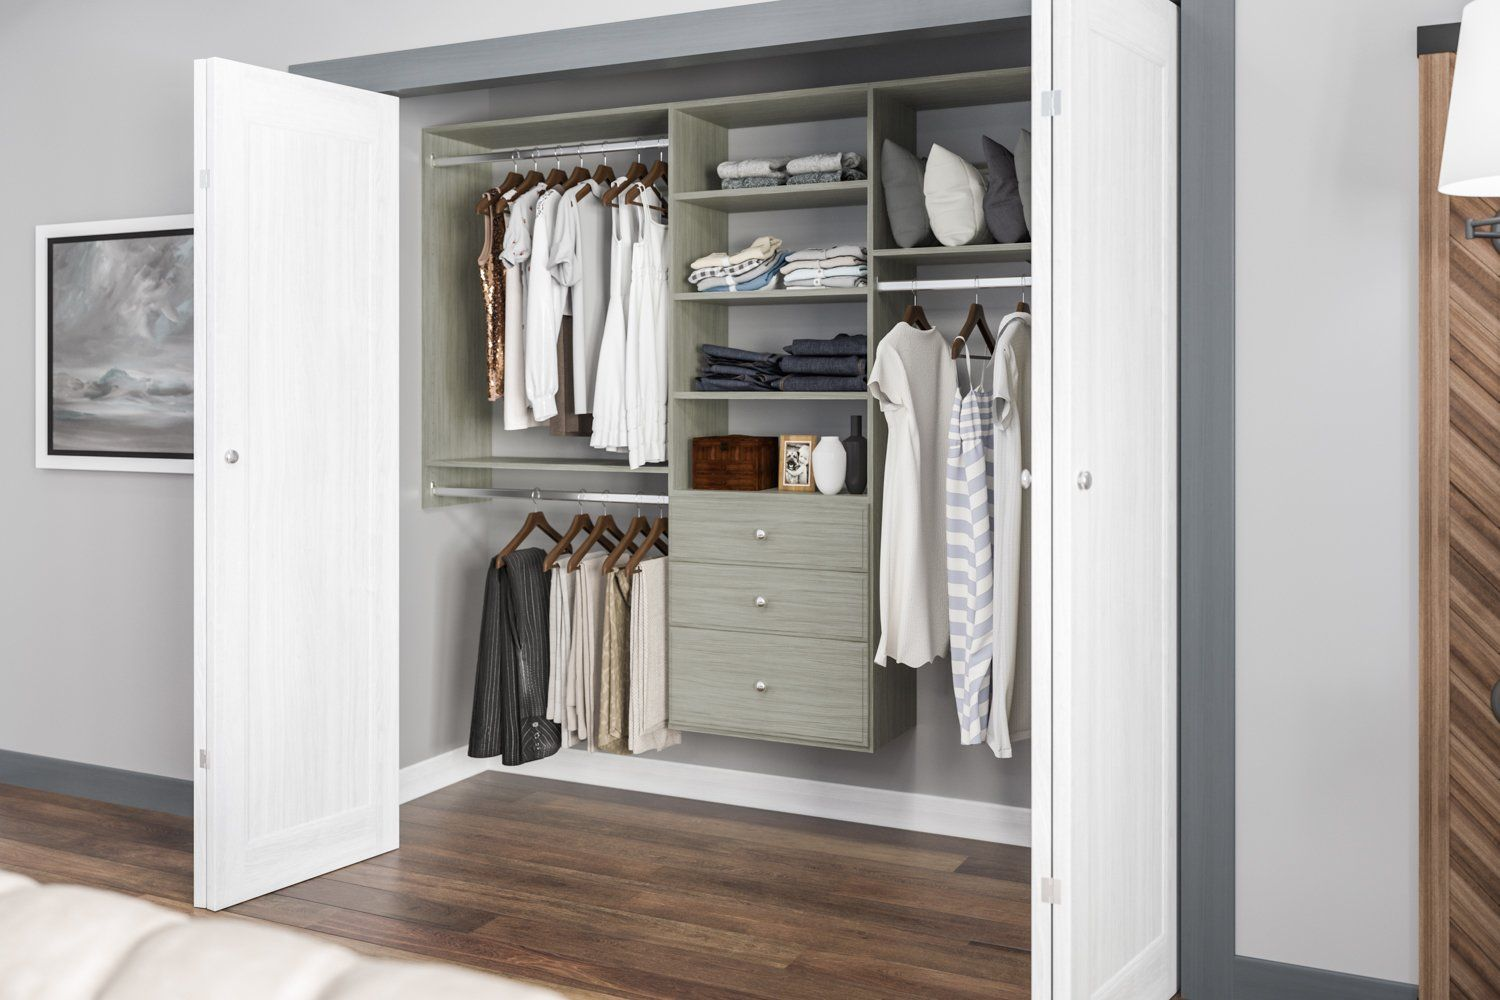 Best Closet Systems Easy Diy Installation Home In 2019 Closet System Closet